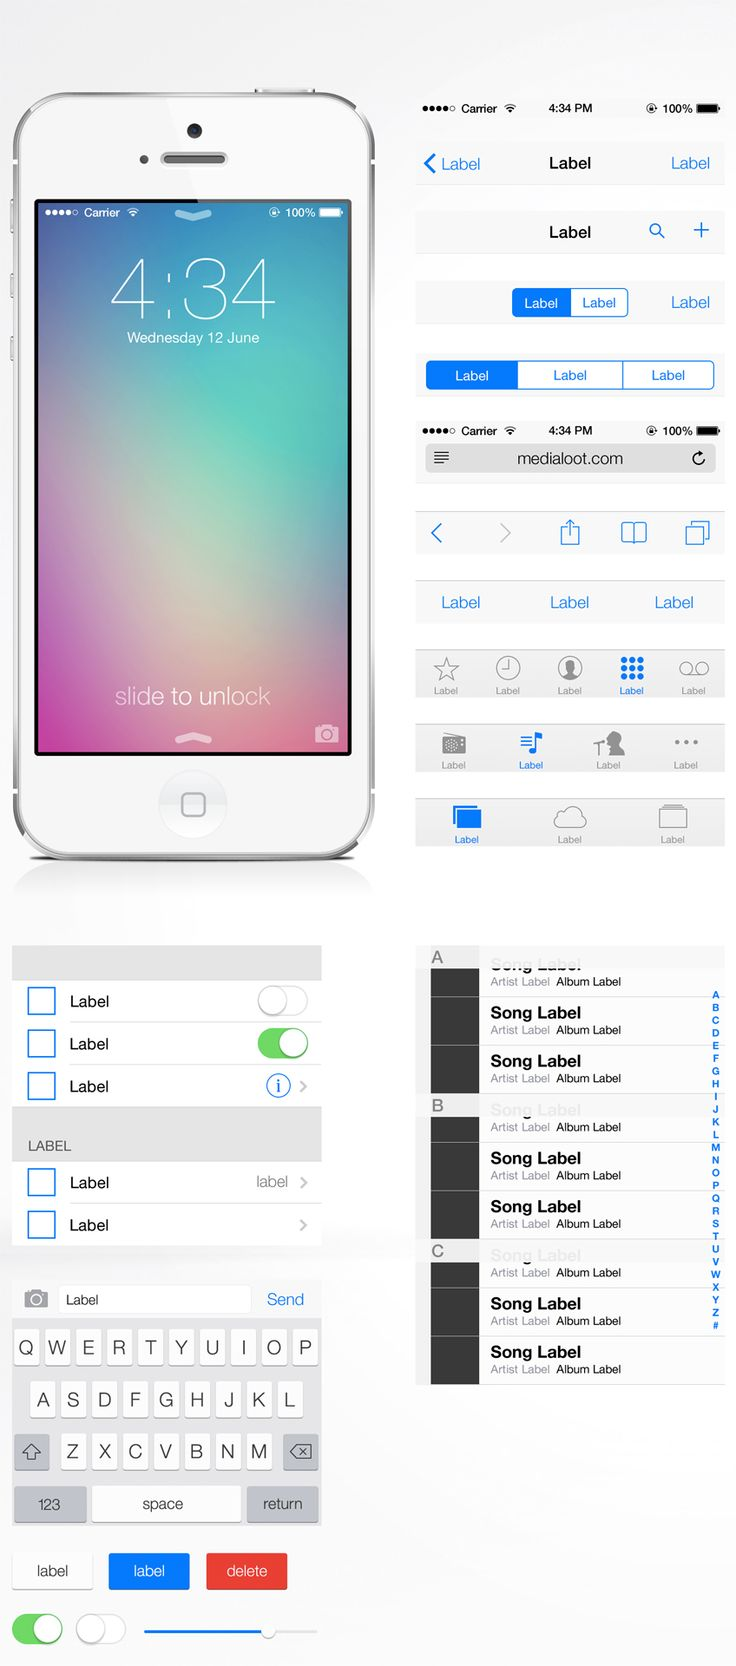 #Free #iOS 7 #UI Kit,  #Apple, #Buttons, #Graphic #Design, #Icon, #iOS7, #Mobile, #PSD, #Resource, #Slider, #Switch, #Toggle, #Vector